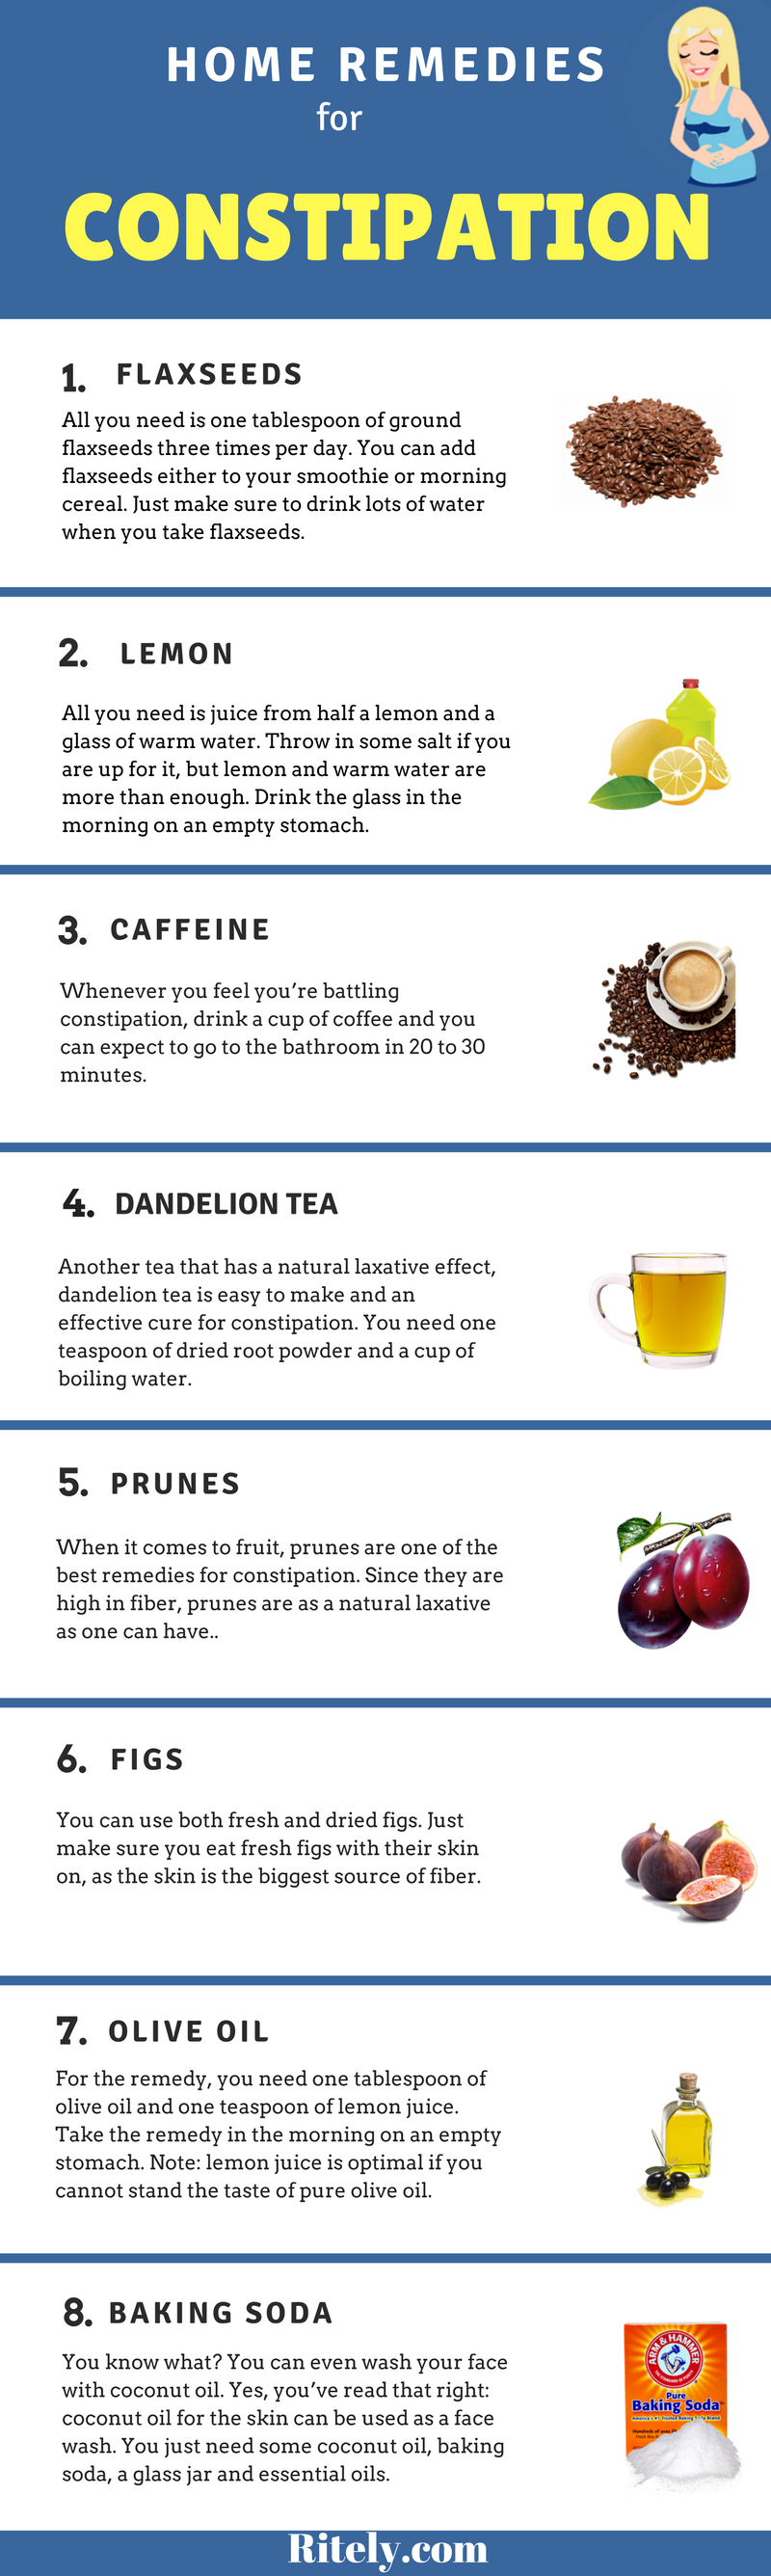 9 Home Remedies for Constipation That Really Work   anti